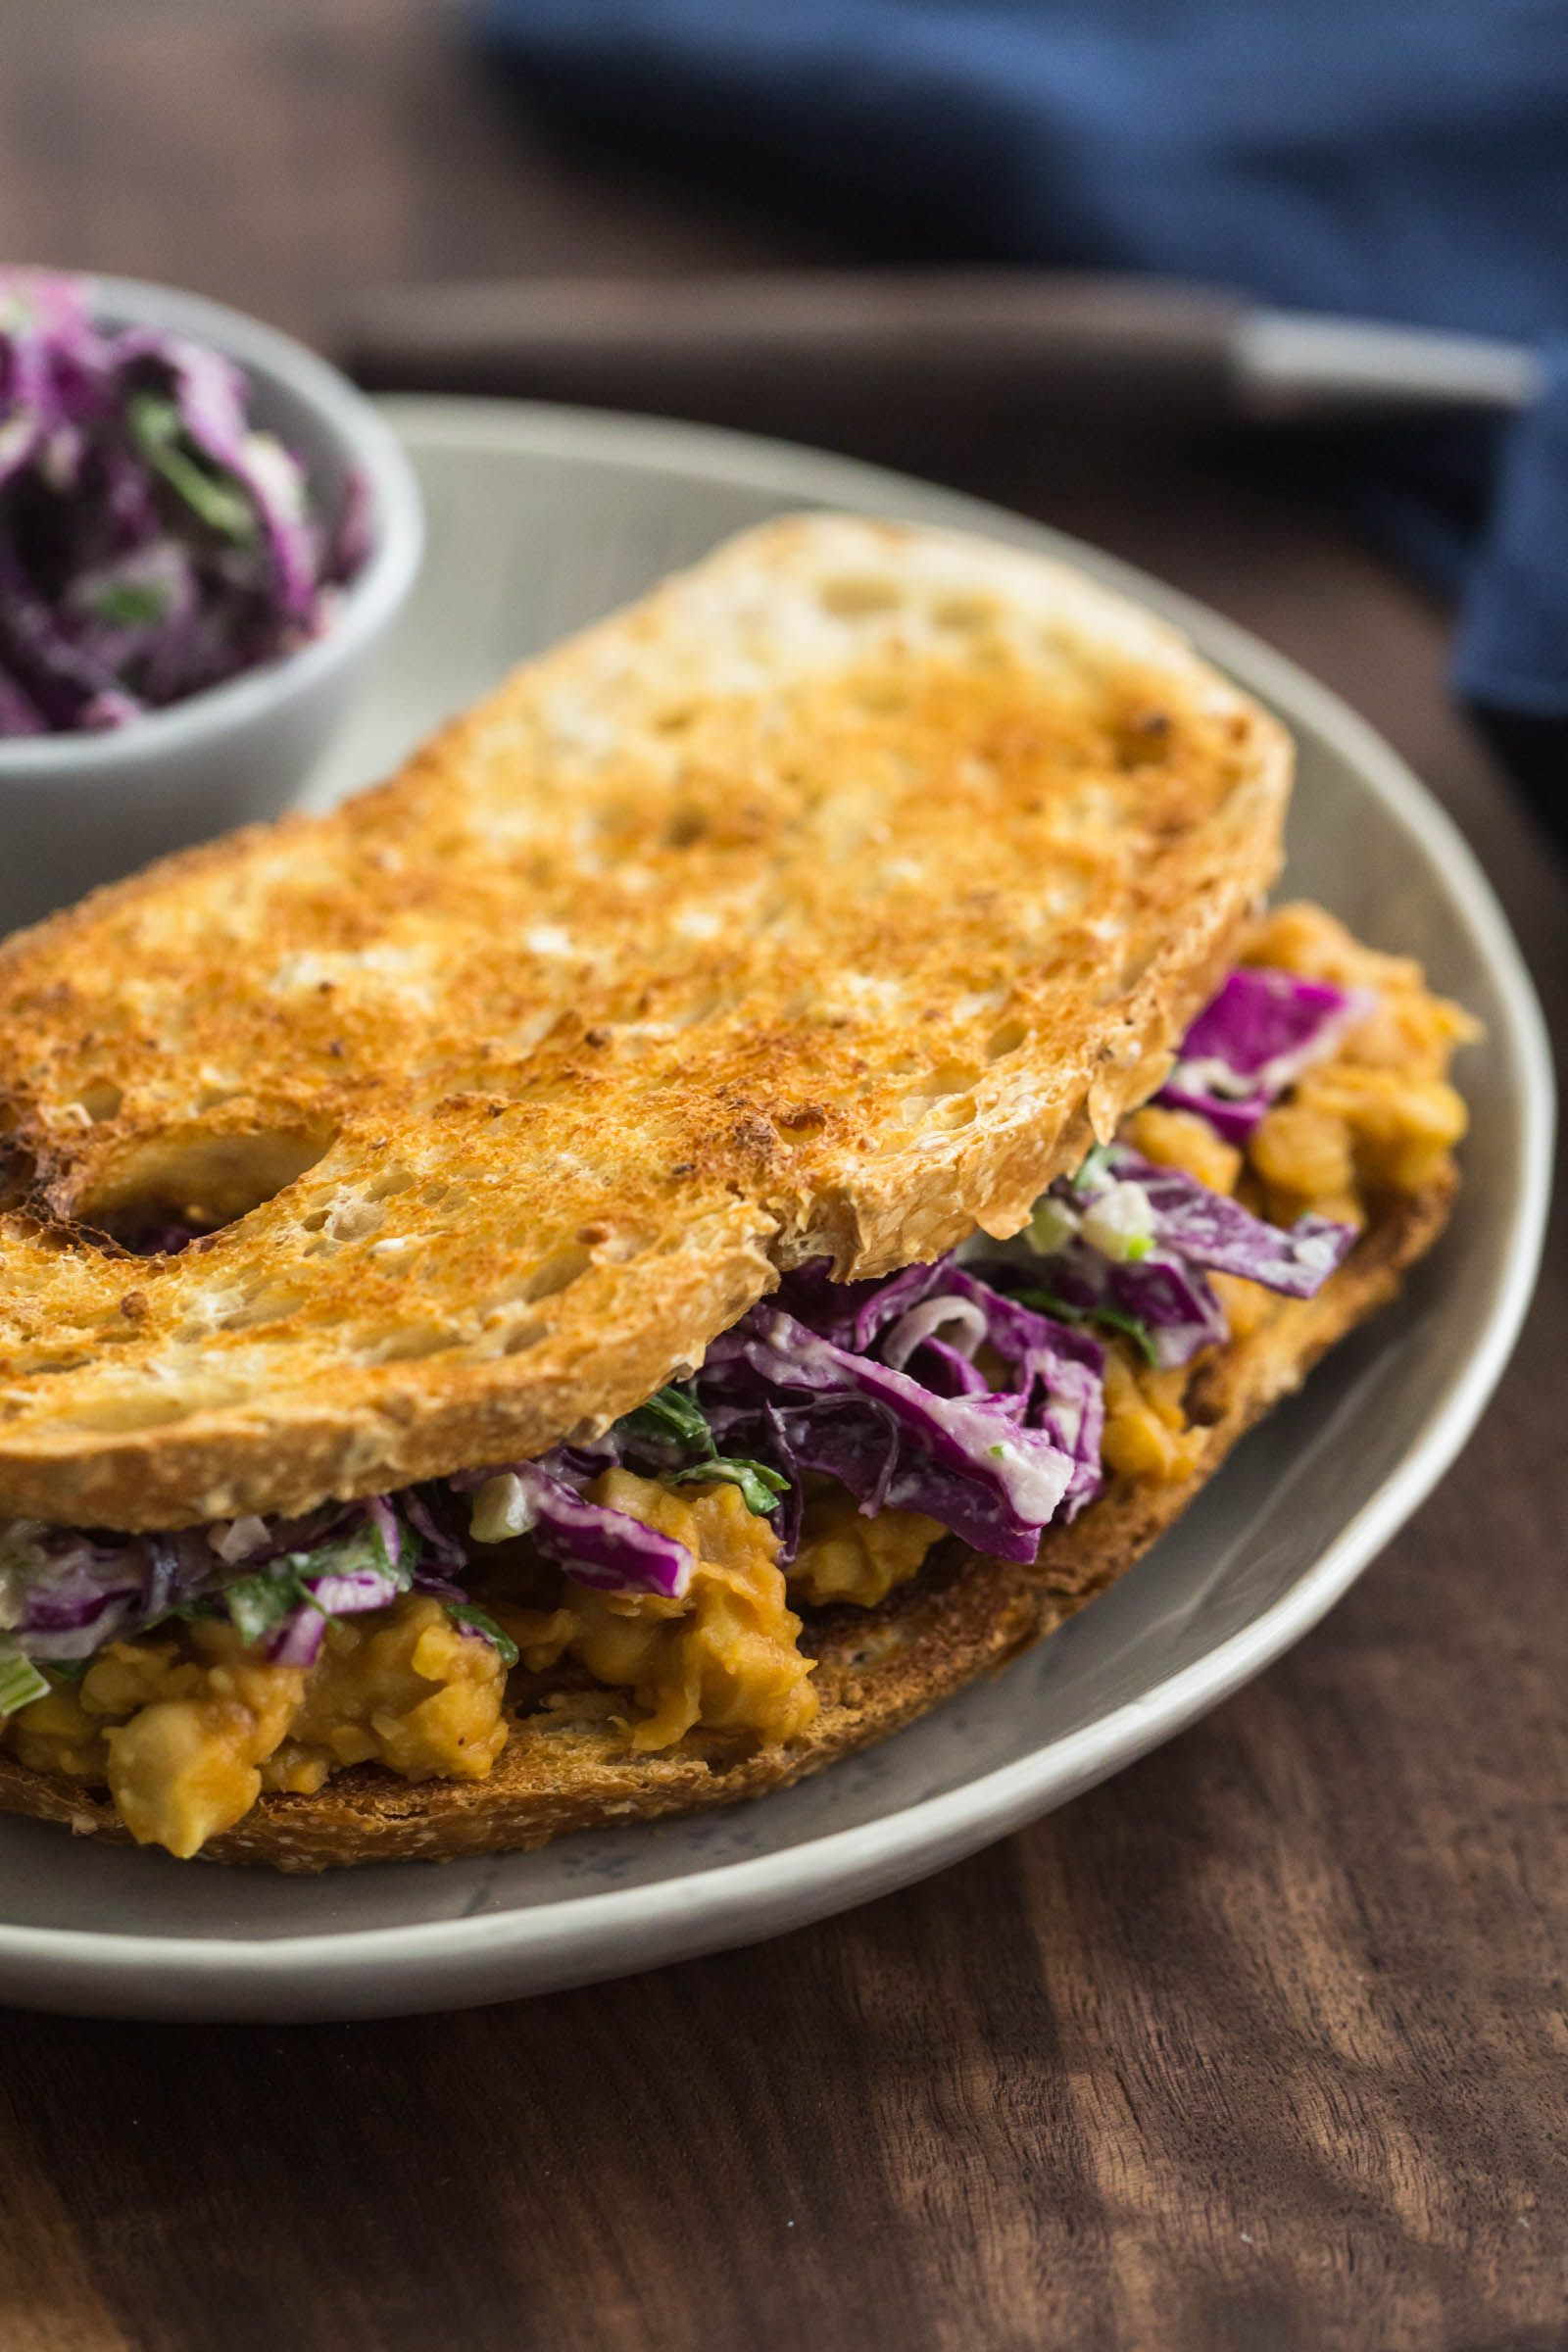 A hearty and messy meal, this bbq chickpea sandwich is made with homemade peach bbq sauce and topped with an easy tahini slaw.